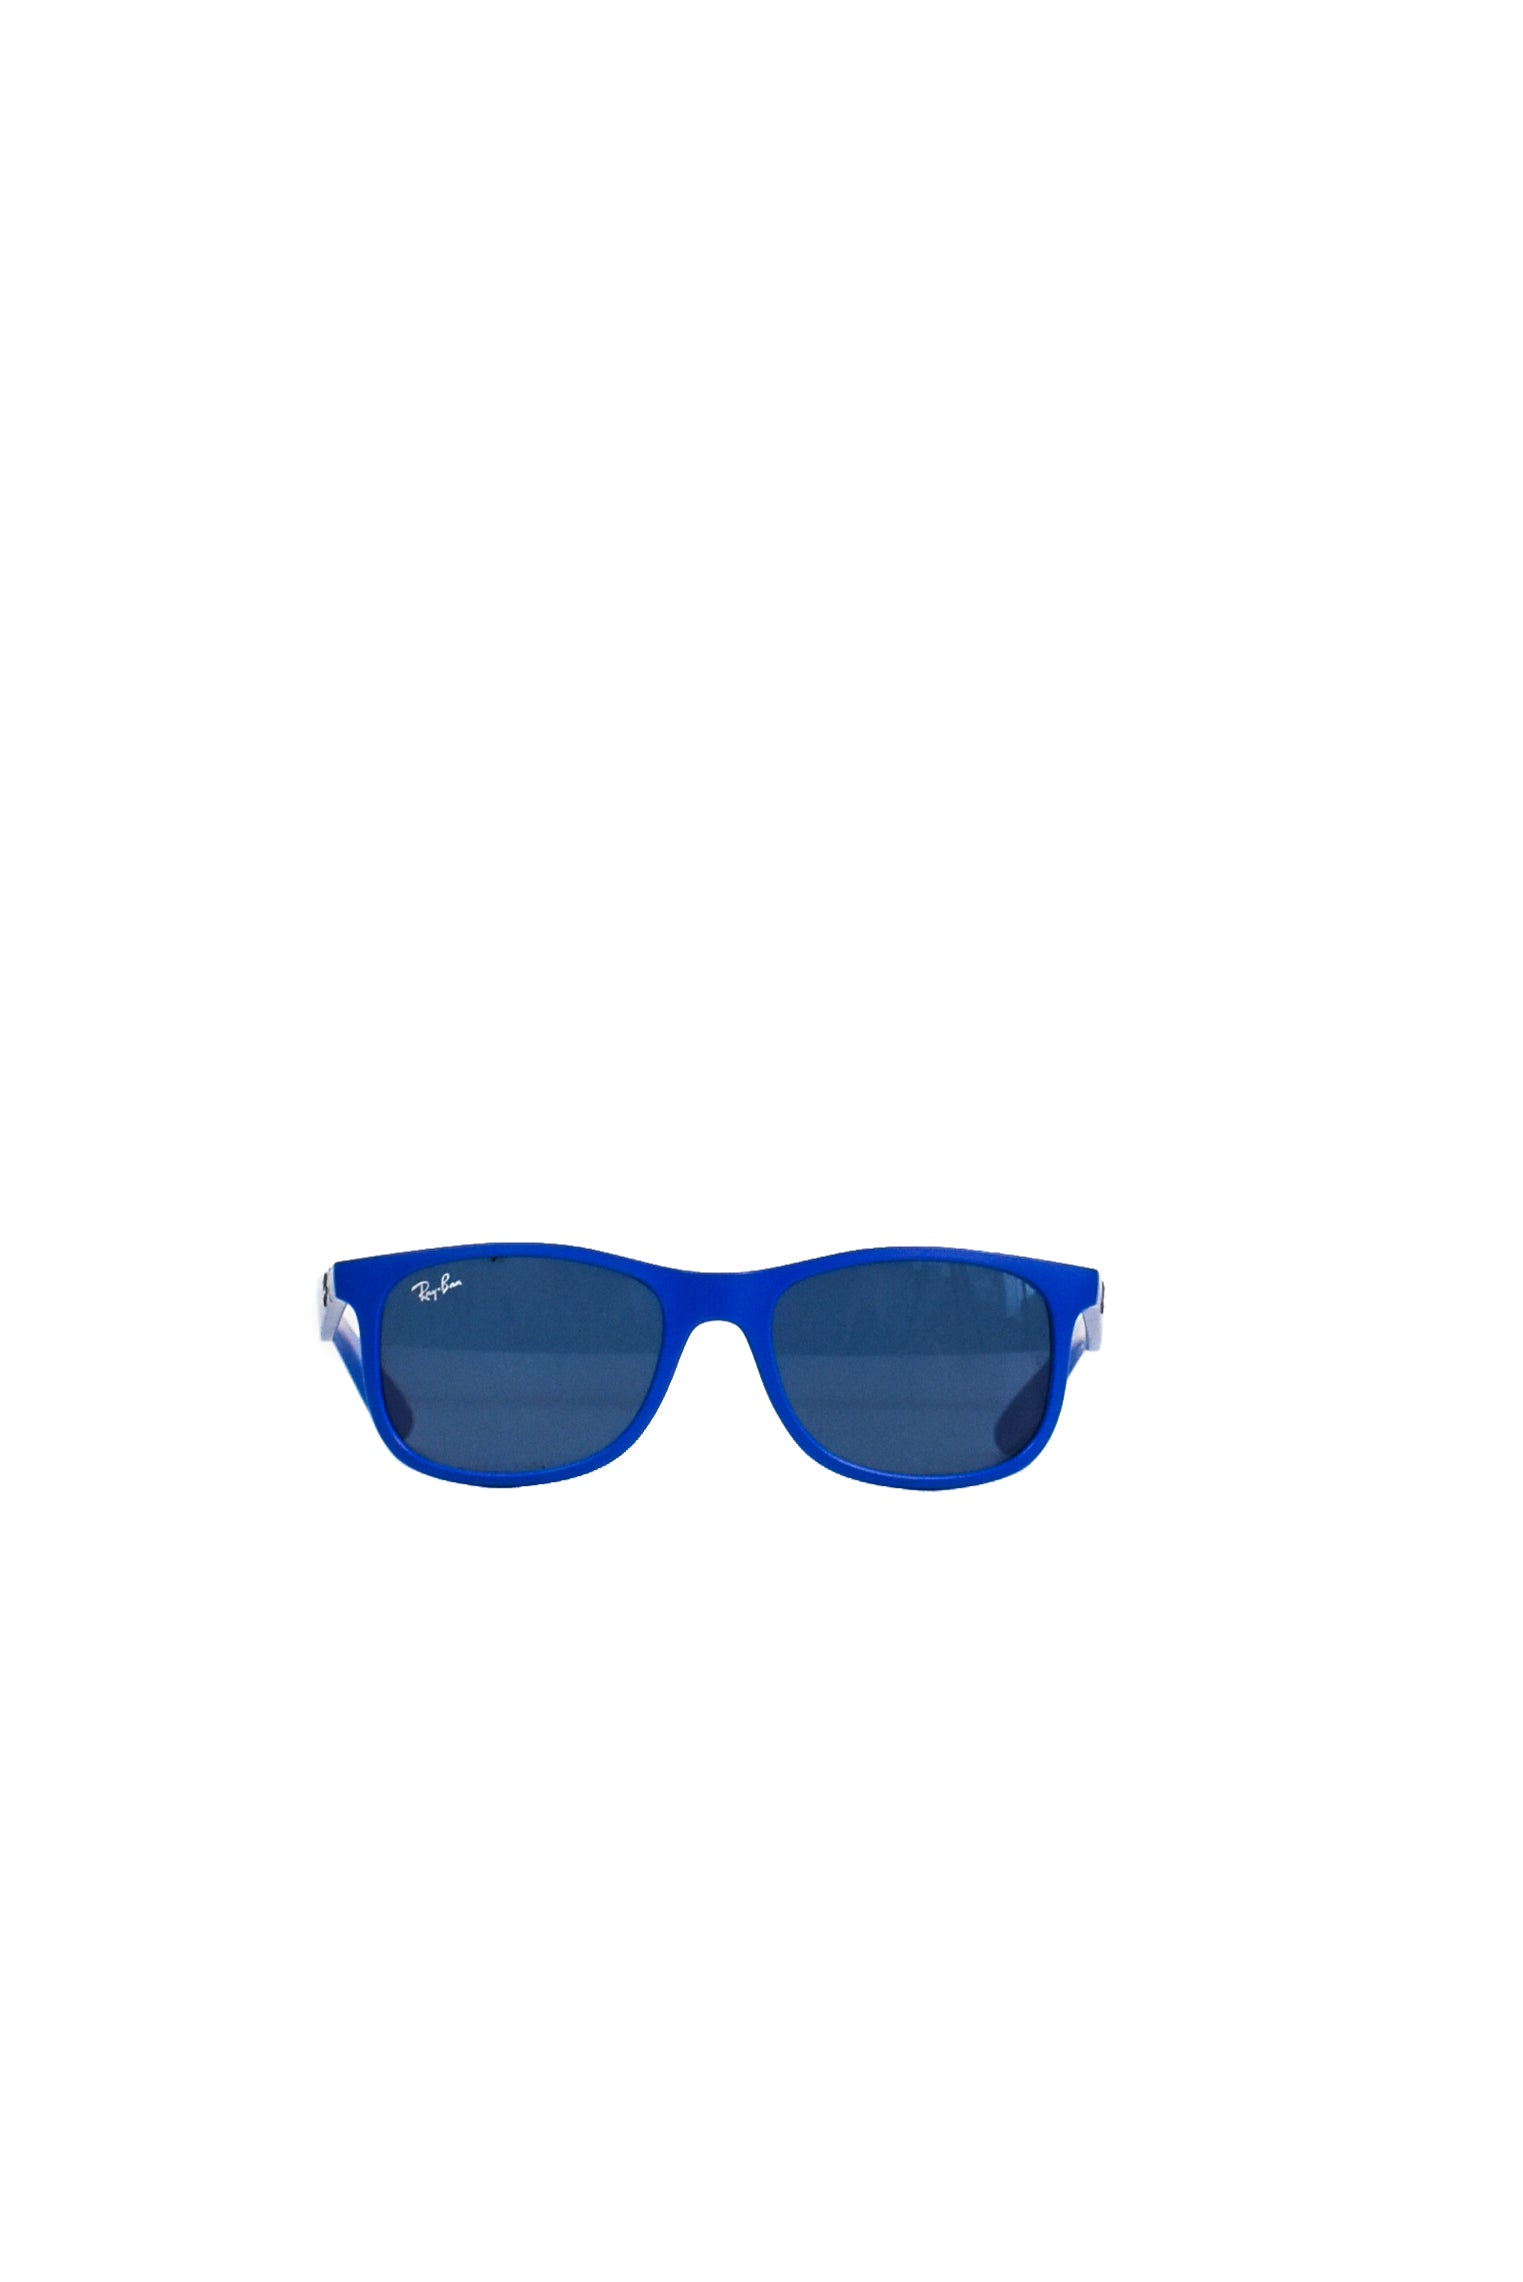 10013505 Ray-Ban Kids~Sunglasses O/S at Retykle